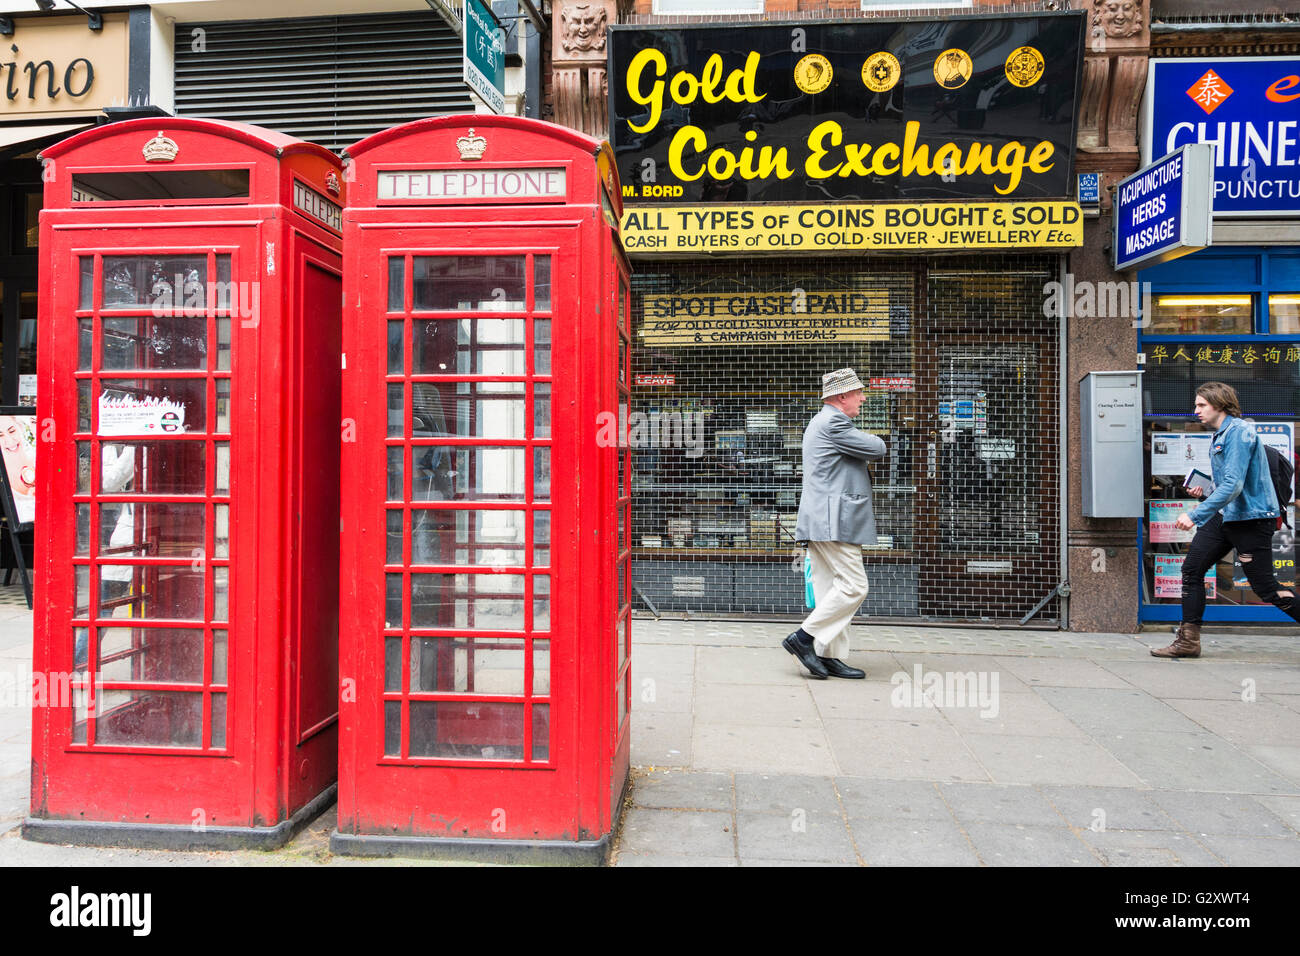 Obsolescence Stock Photos Images Alamy Plain Unpopulated Printed Circuit Boards Recycling Gold Silver A Man Passes The Coin Exchange On Charring Cross Road Next To Two Bright Red